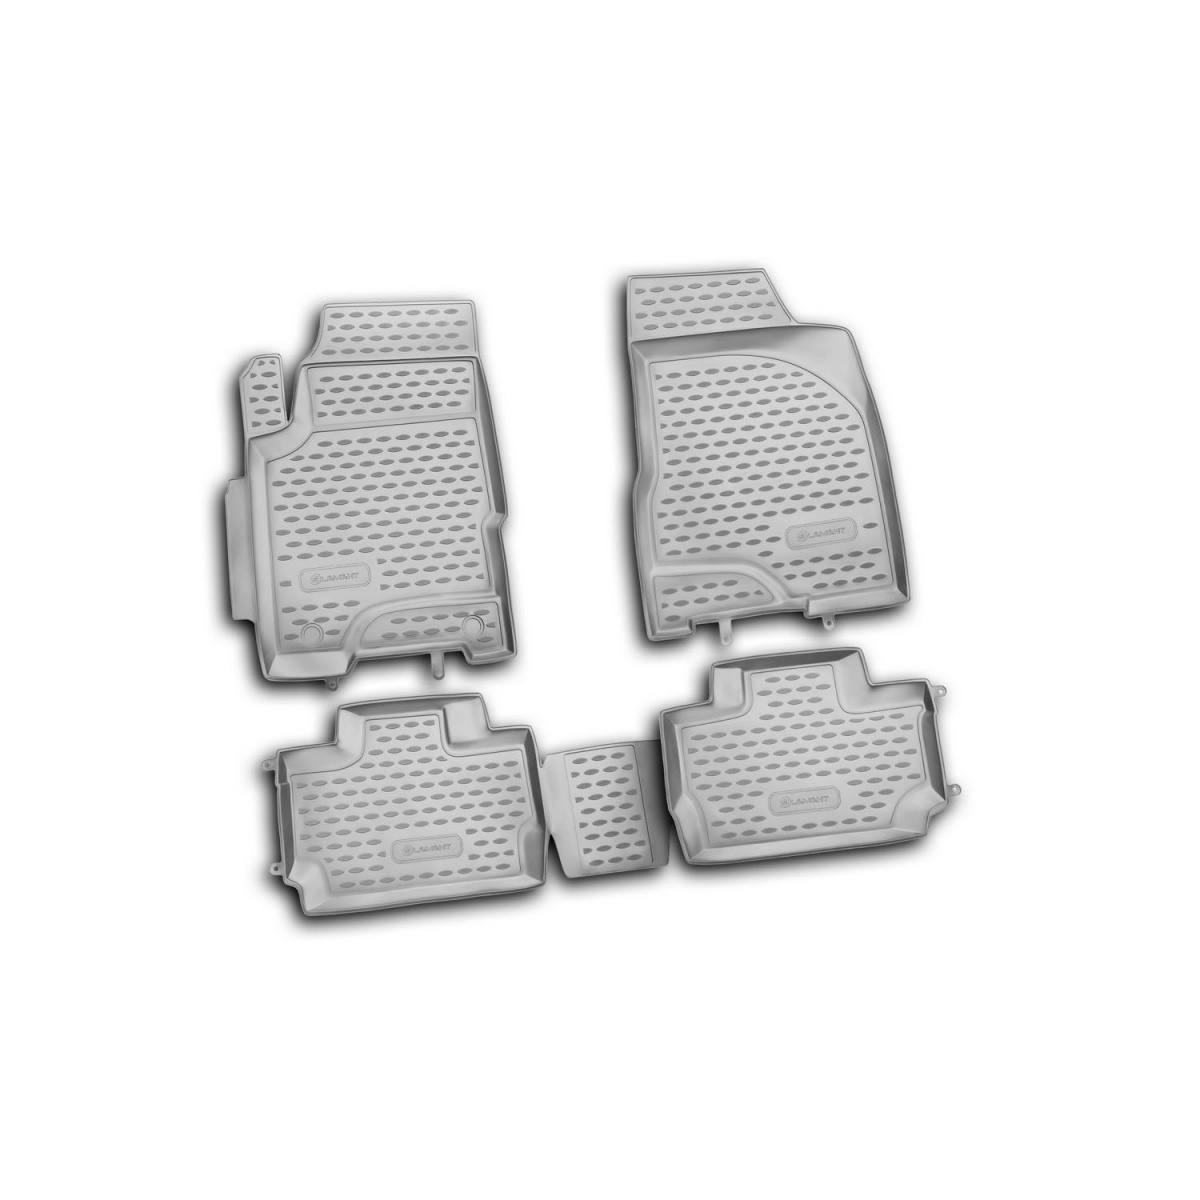 Floor mats for <font><b>Chery</b></font> <font><b>A13</b></font>, 2010-4 PCs (PU) (<font><b>bonus</b></font>) image